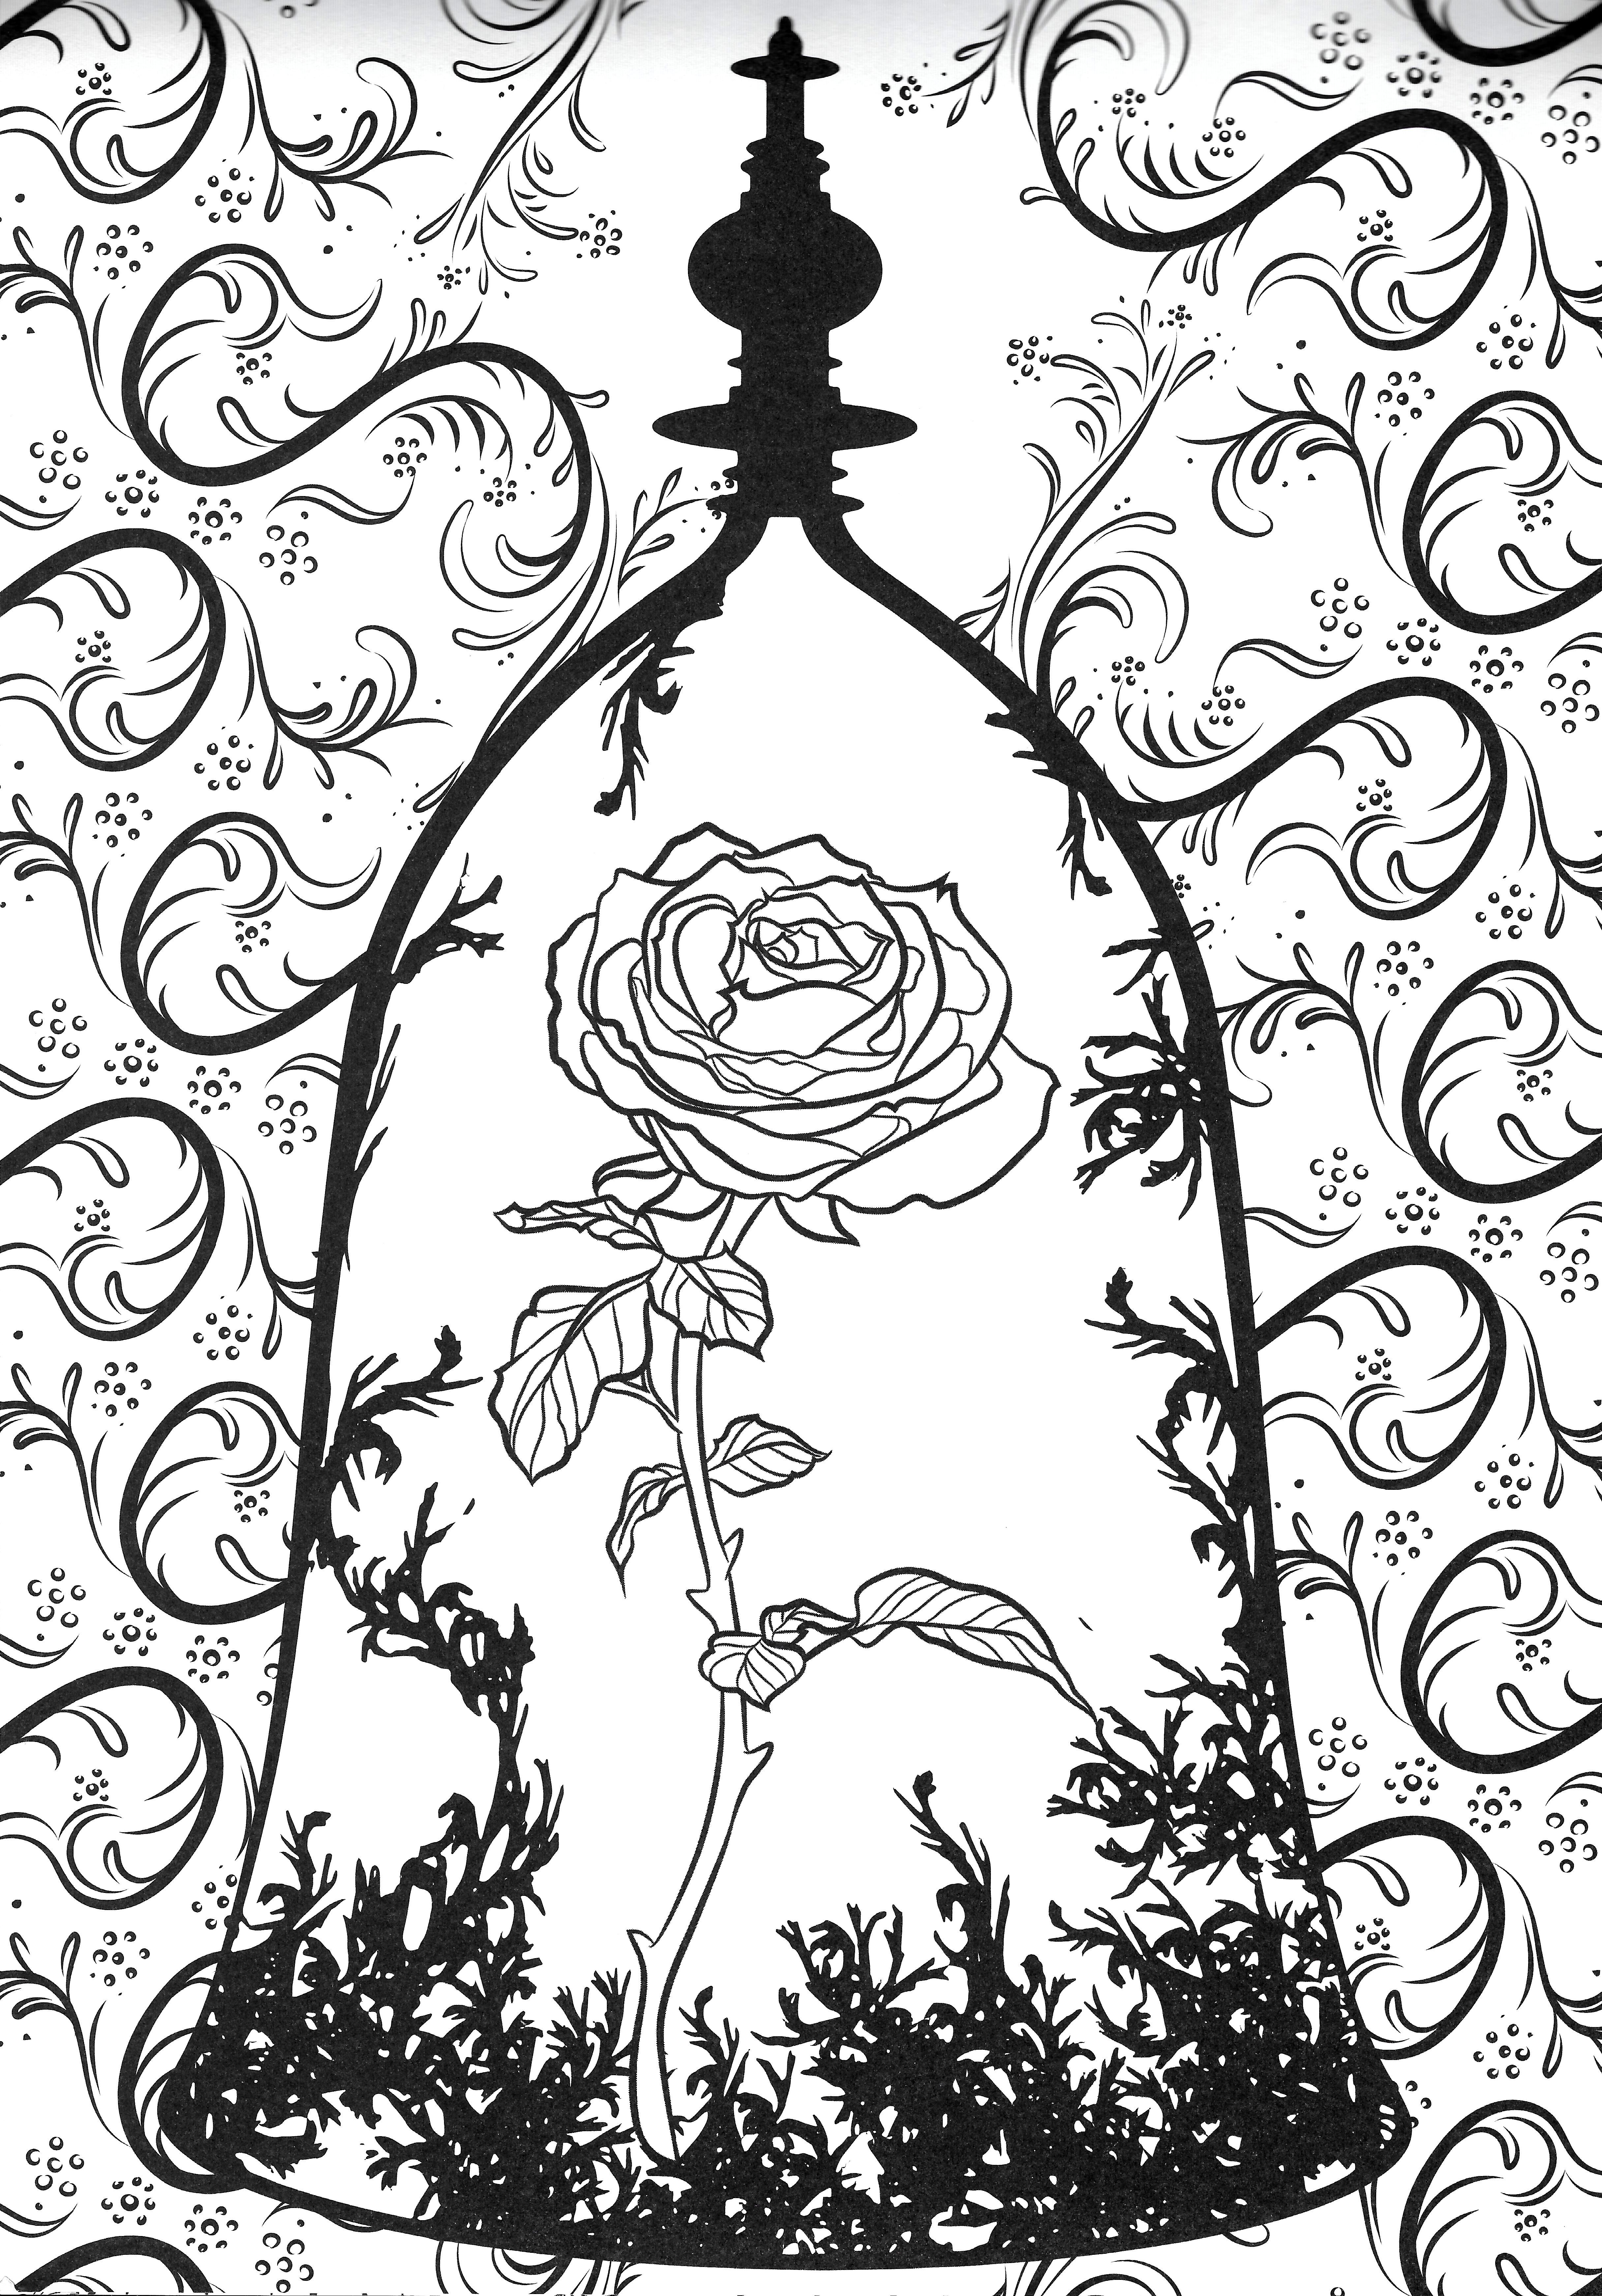 beauty and the beast rose coloring pages beauty and the beast drawings follow kyle lambert pages beauty rose coloring the beast and